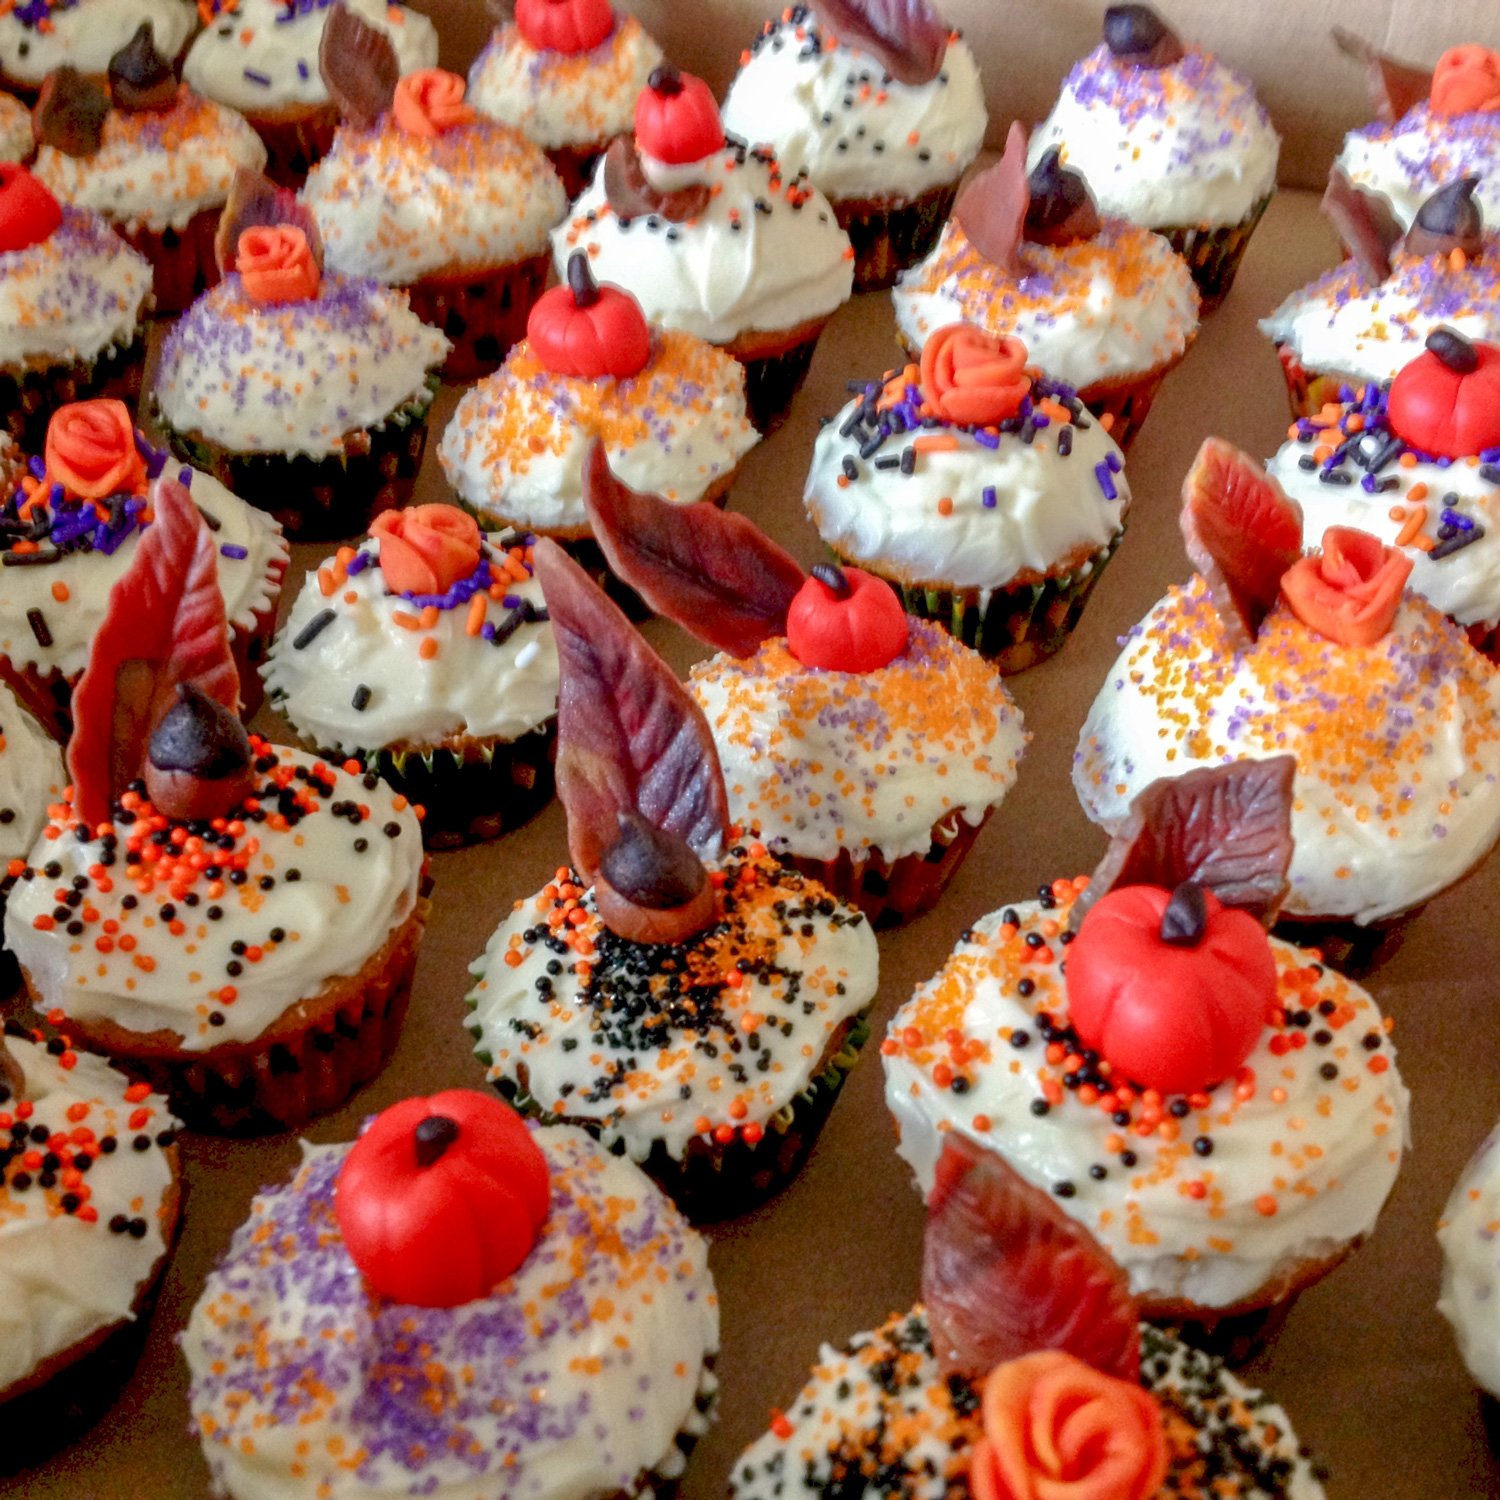 """This is a delicious recipe for Easy Cream Cheese Frosted Pumpkin Cupcakes. A """"must have"""" dessert during """"everything pumpkin"""" season!"""